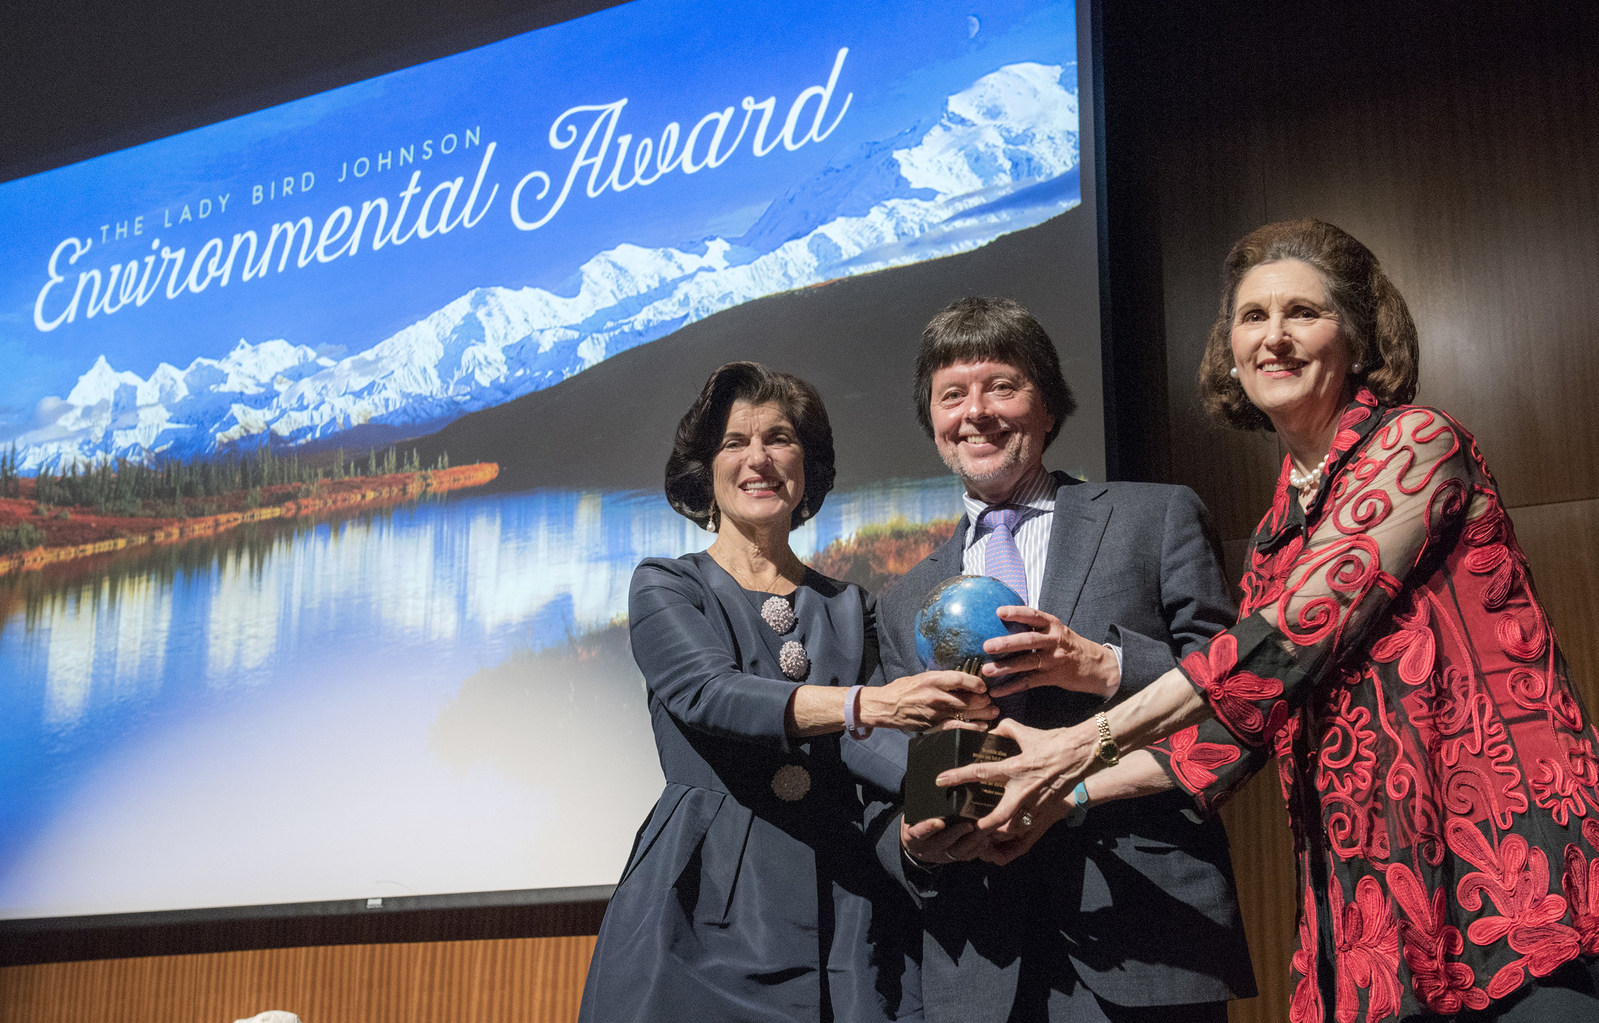 Emmy Award-winning documentary filmmaker Ken Burns receives the 2017 Lady Bird Johnson Environmental Award from President and Lady Bird Johnson's daughters, Luci Baines Johnson, left, and Lynda Johnson Robb, right.